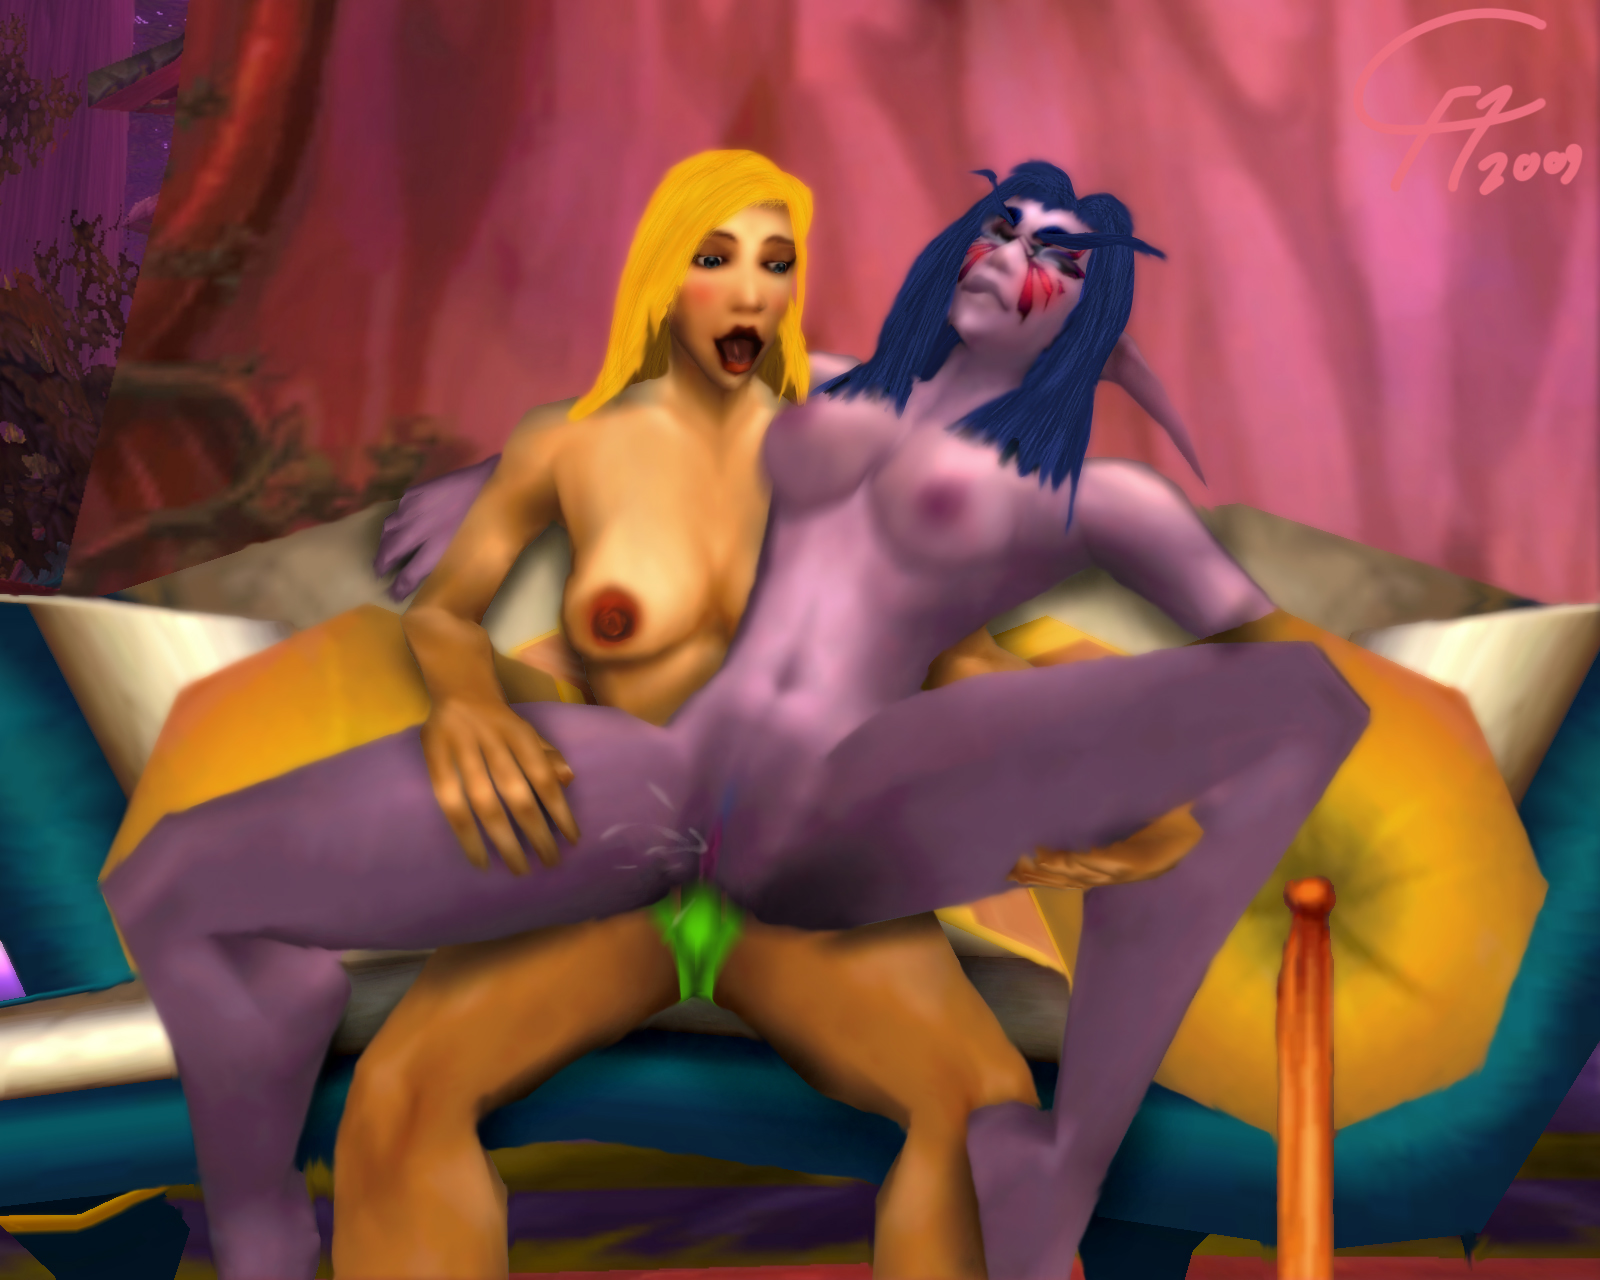 WoW nelf hentai sexy video